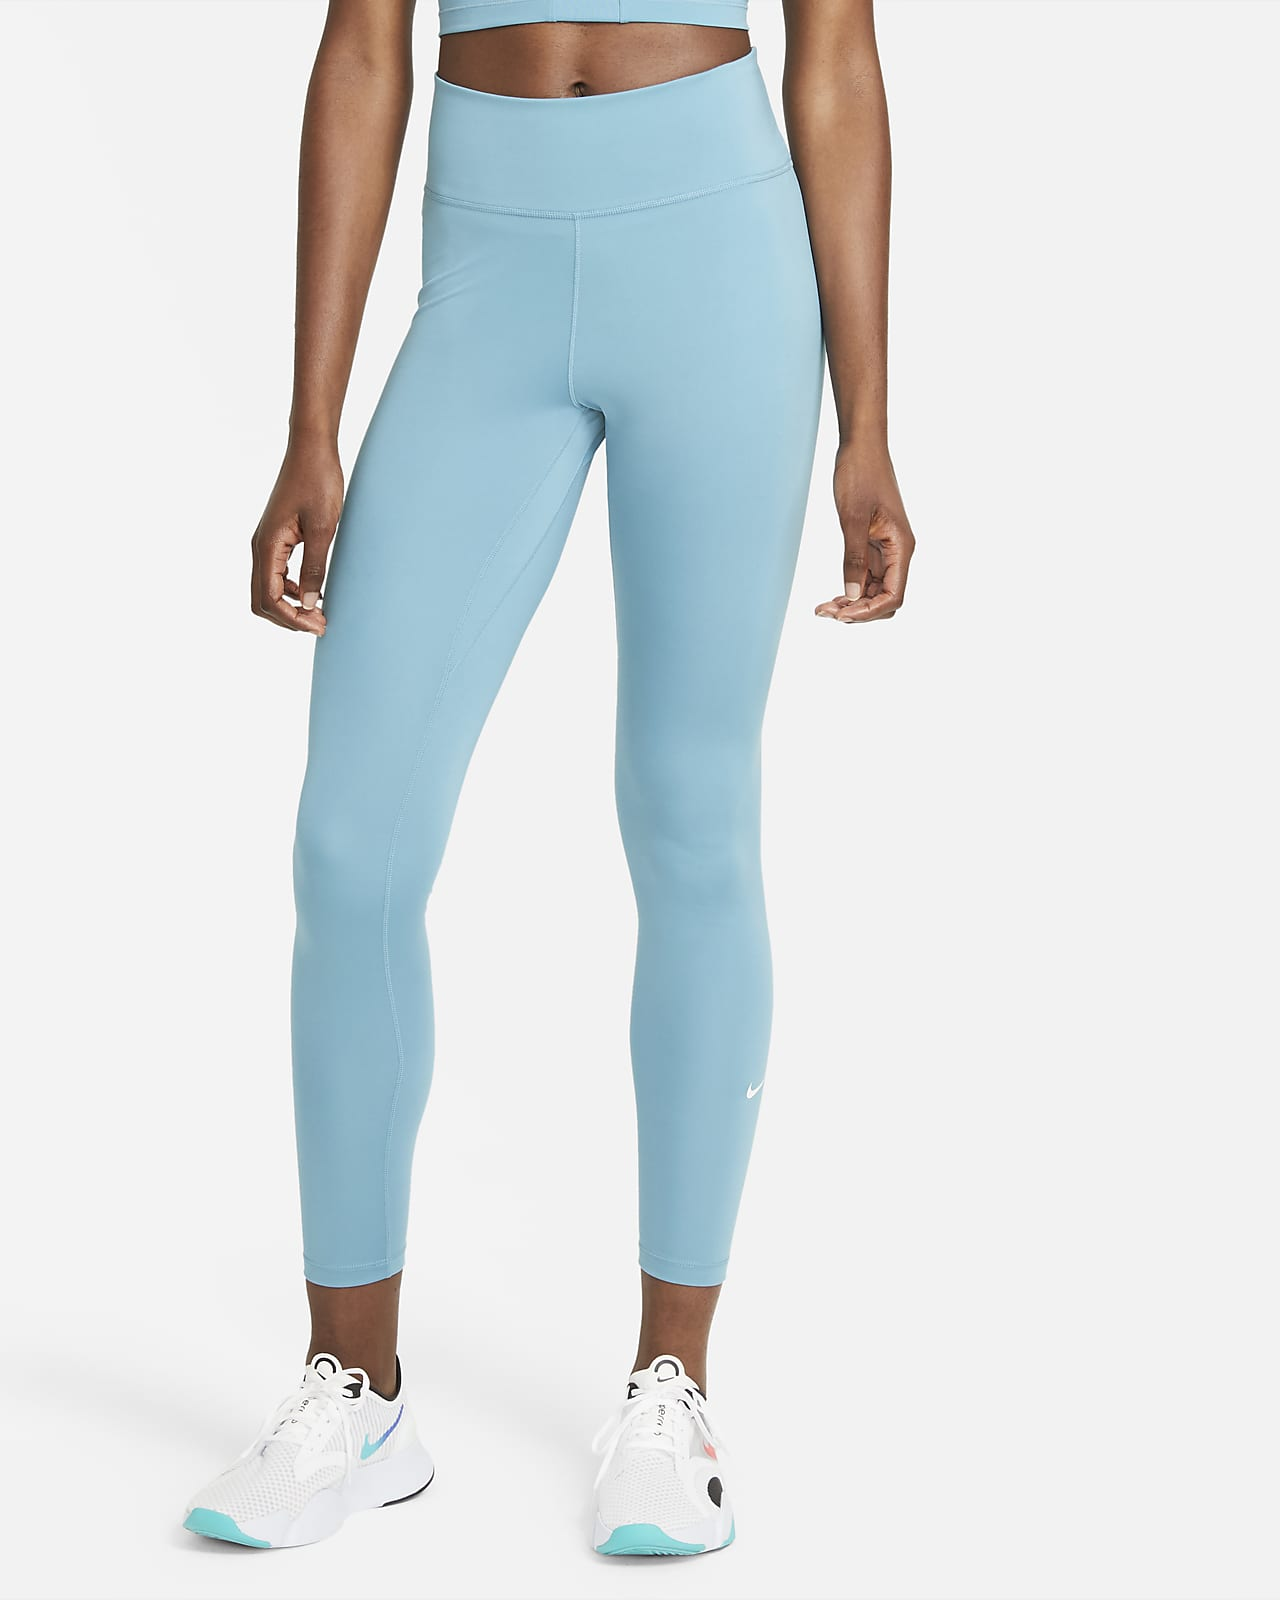 Leggings de tiro medio para mujer Nike Dri-FIT One